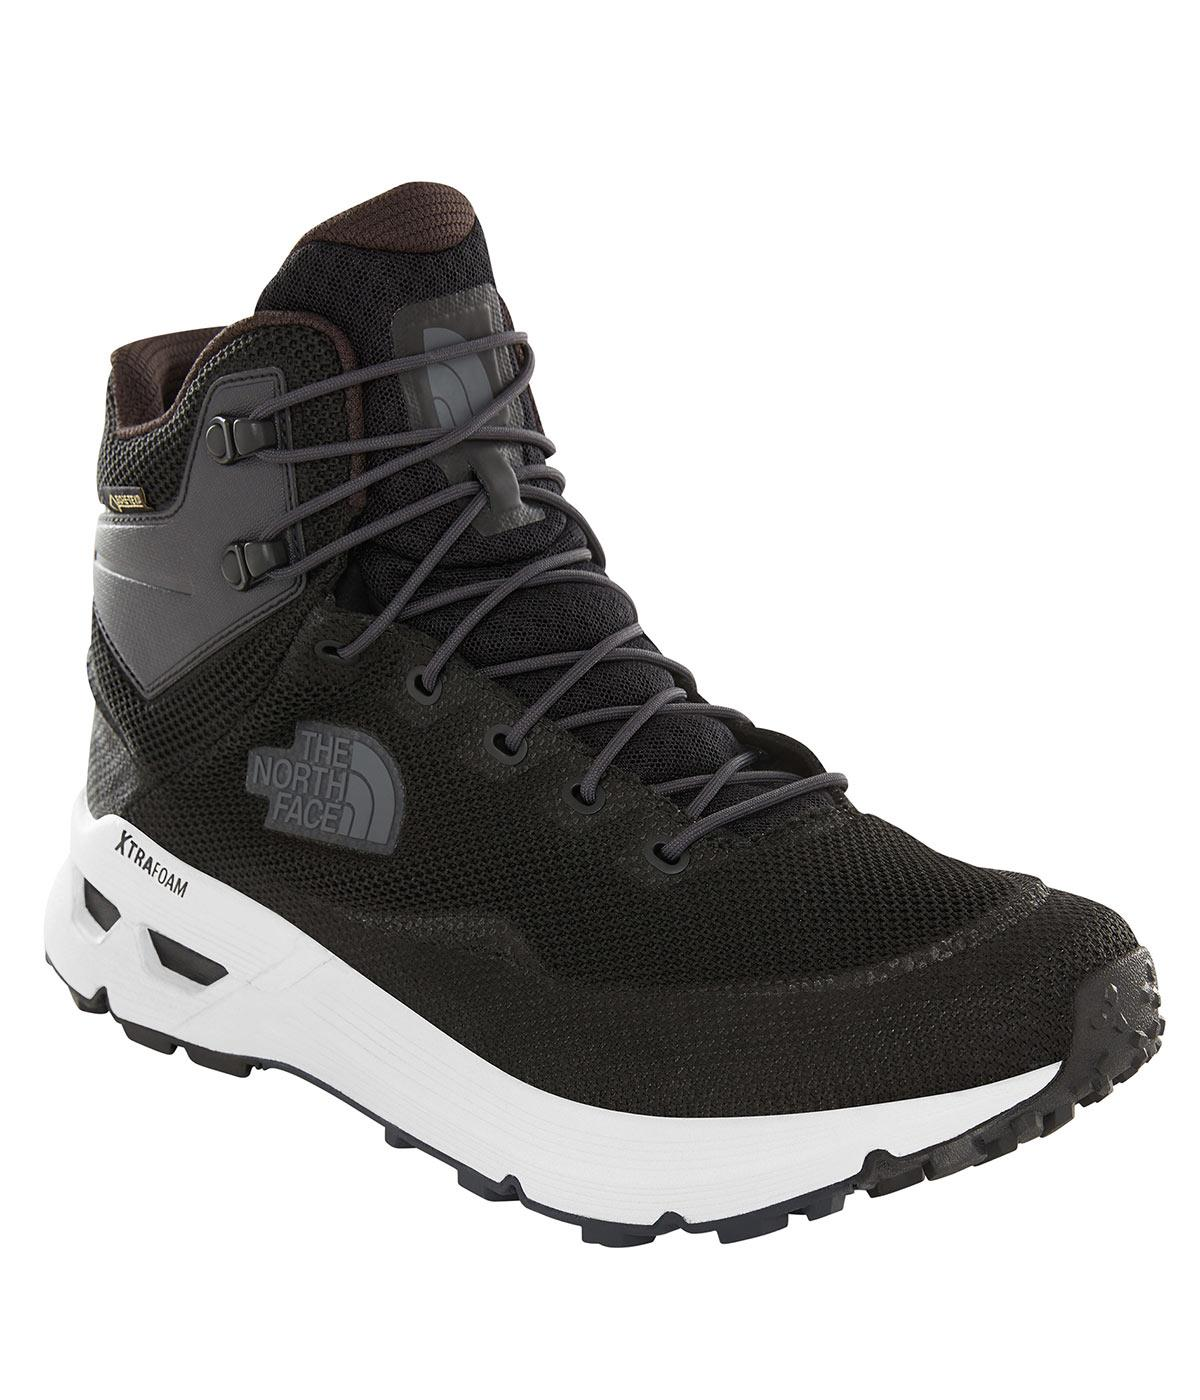 The North Face Safien Mid Goretex  Nf0A3Rdcca01 Bot